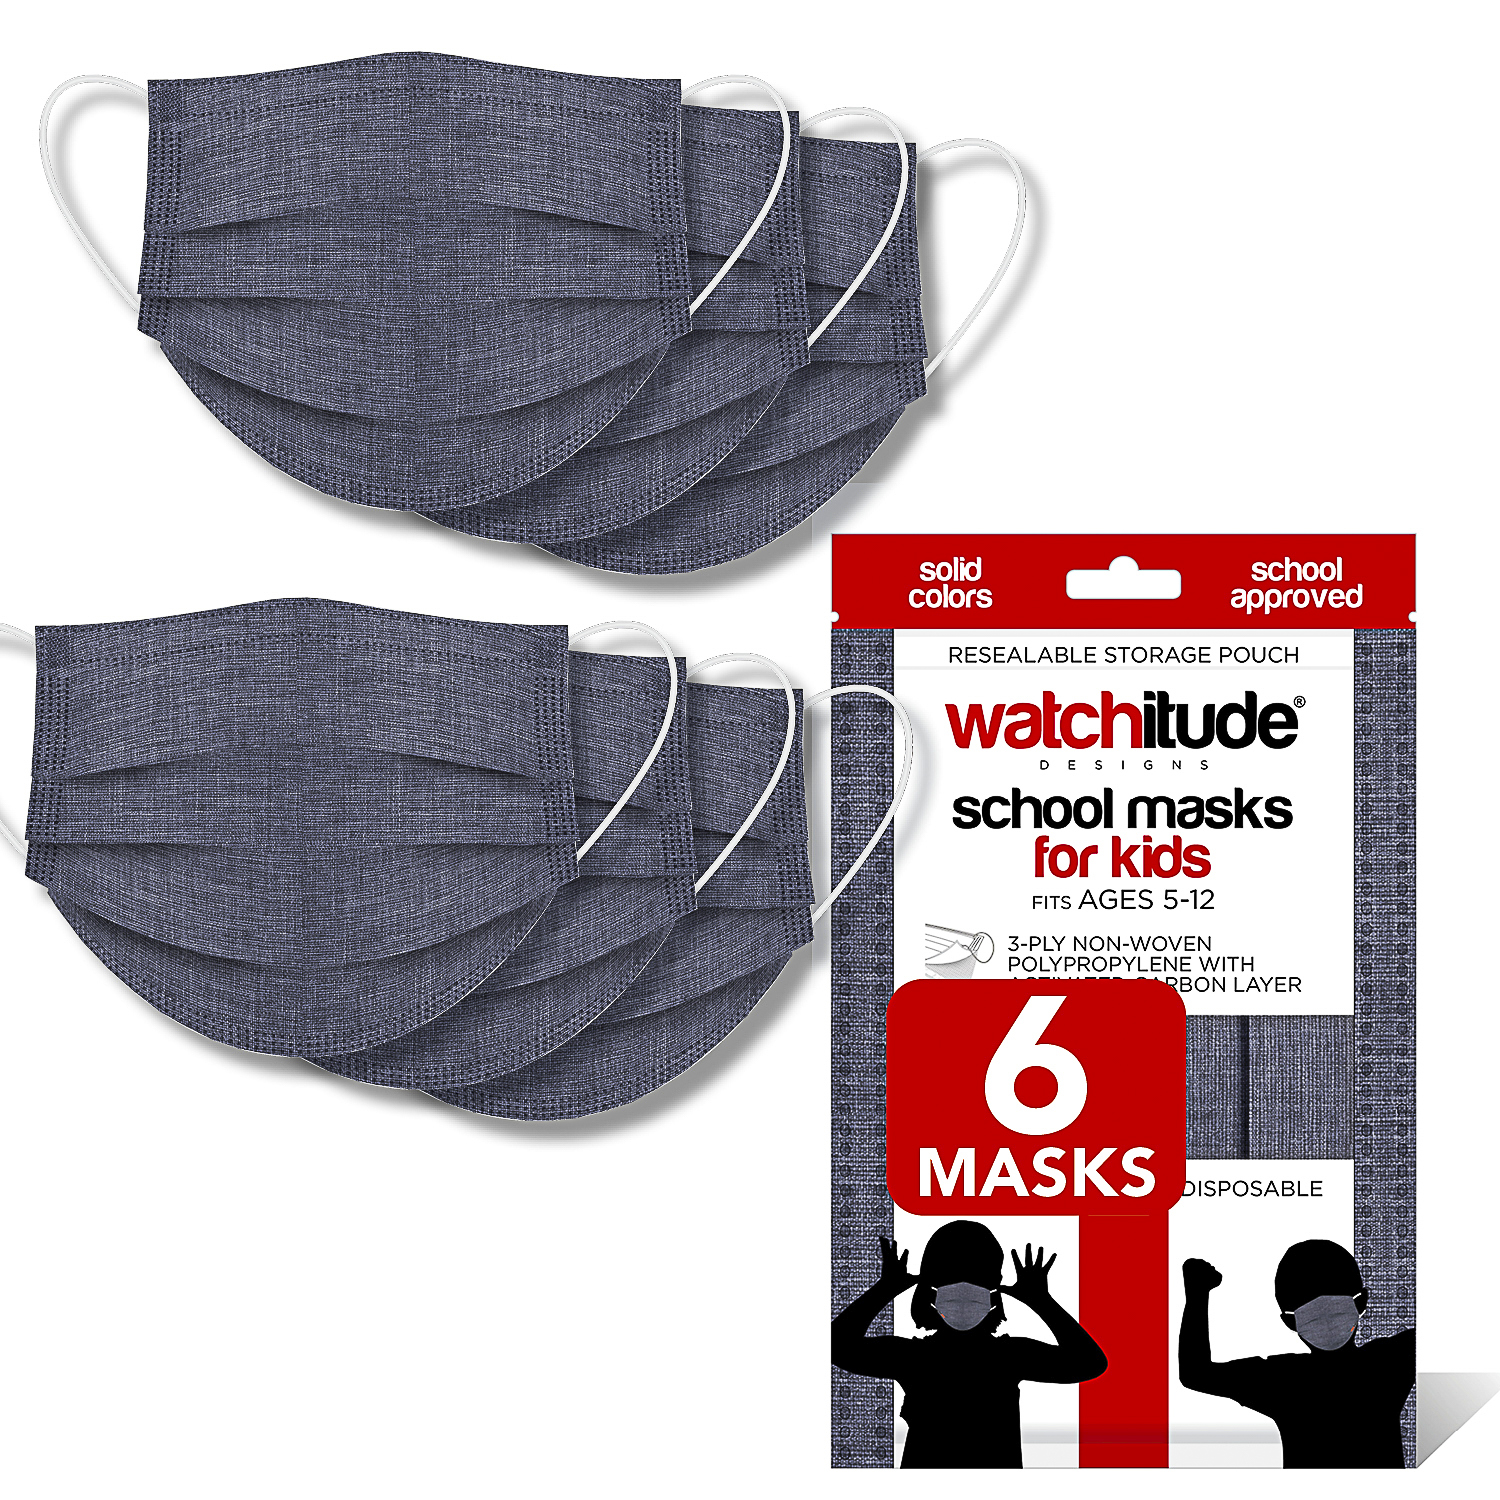 Charcoal Gray - Watchitude Kids School Masks (6-pack) - Solid Color - School Approved